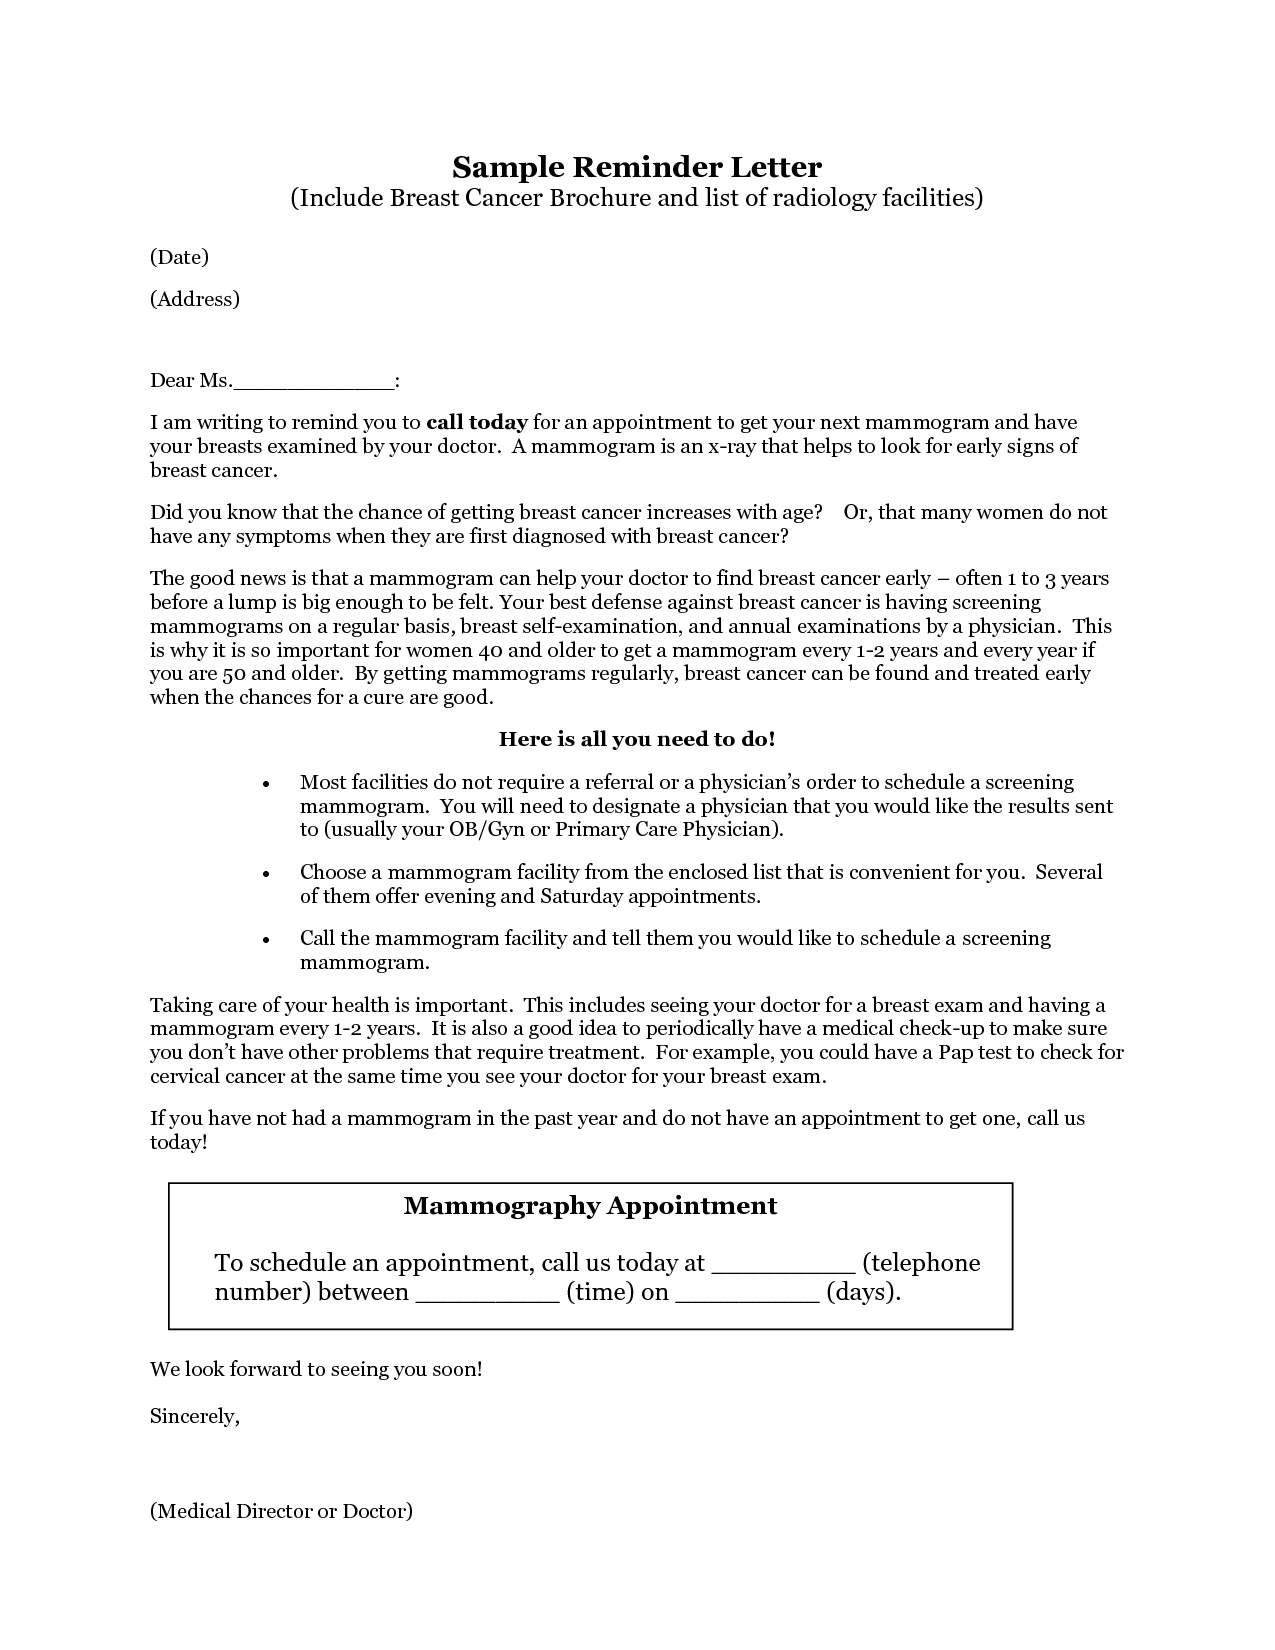 Appointment Reminder Letter Template Medical Collection | Letter ...